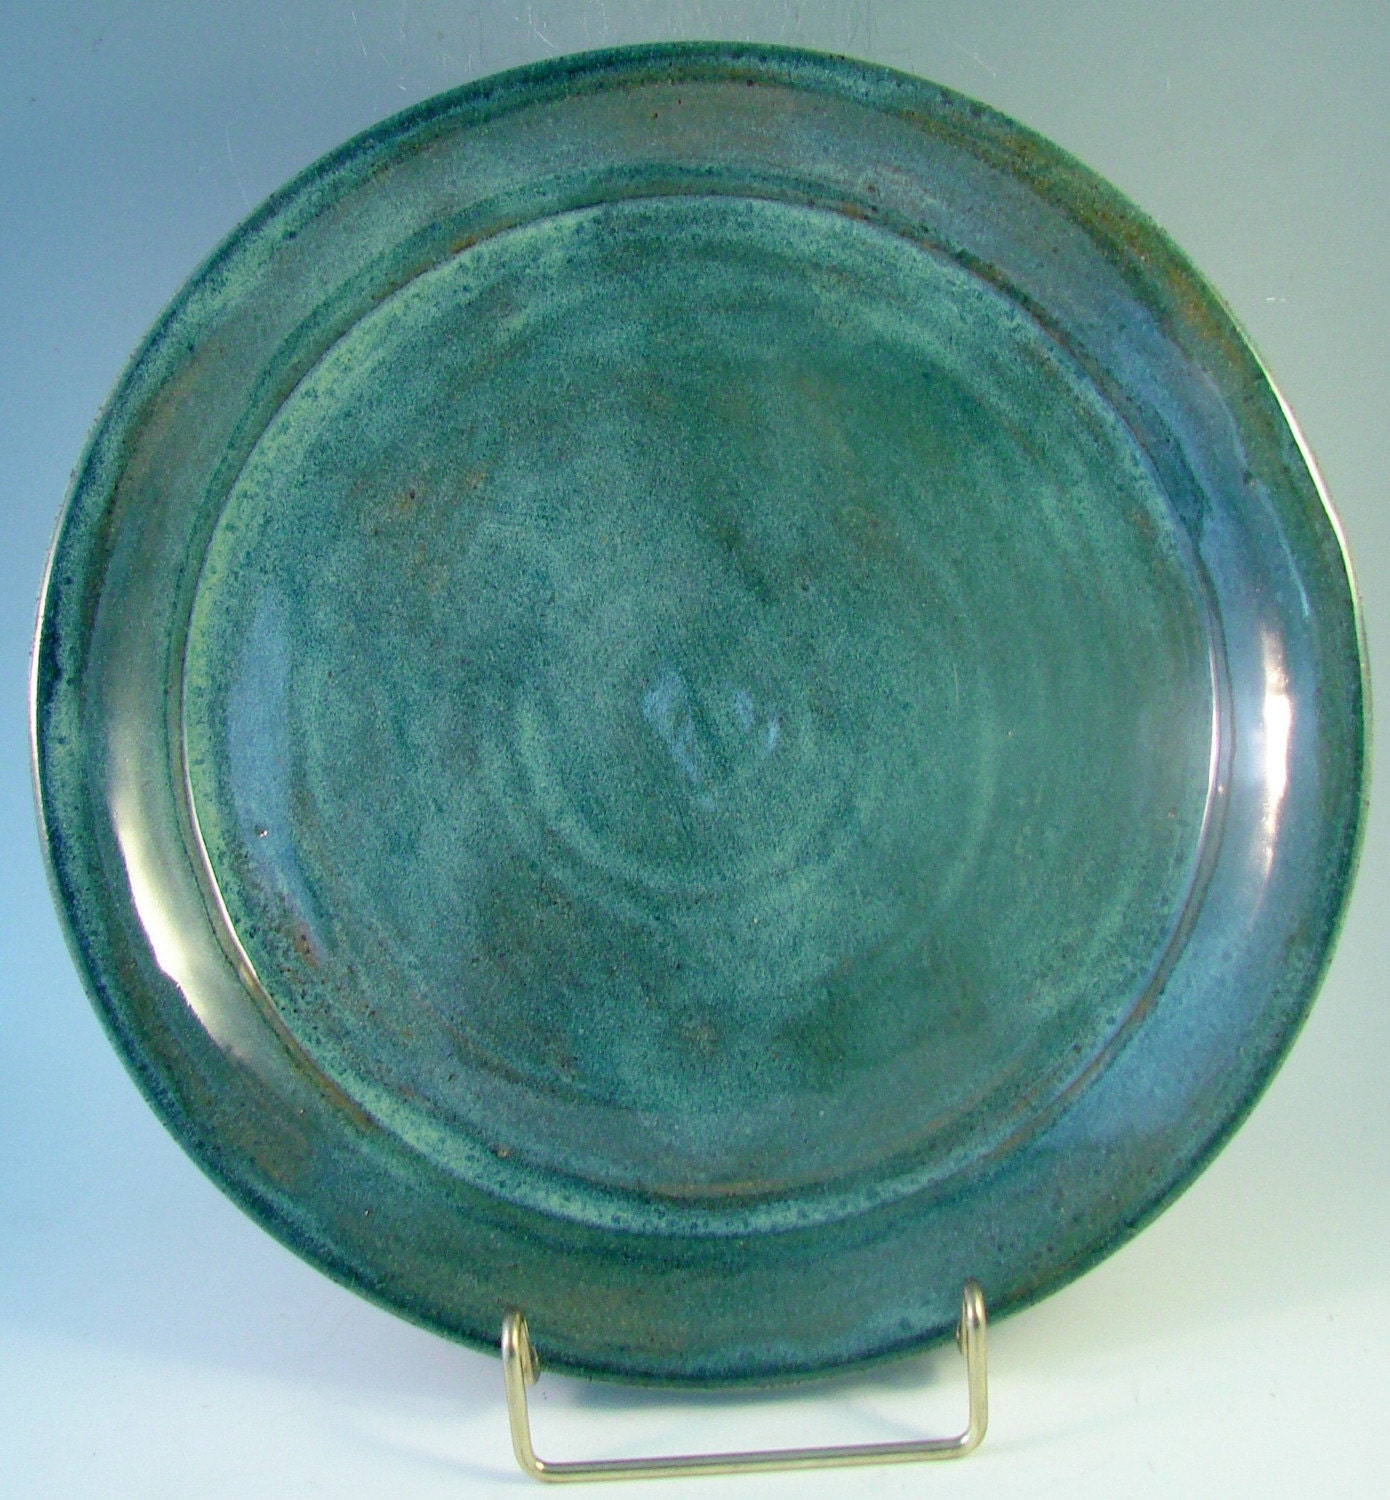 Blue Green Dinner Plate Handmade Stoneware Clay By